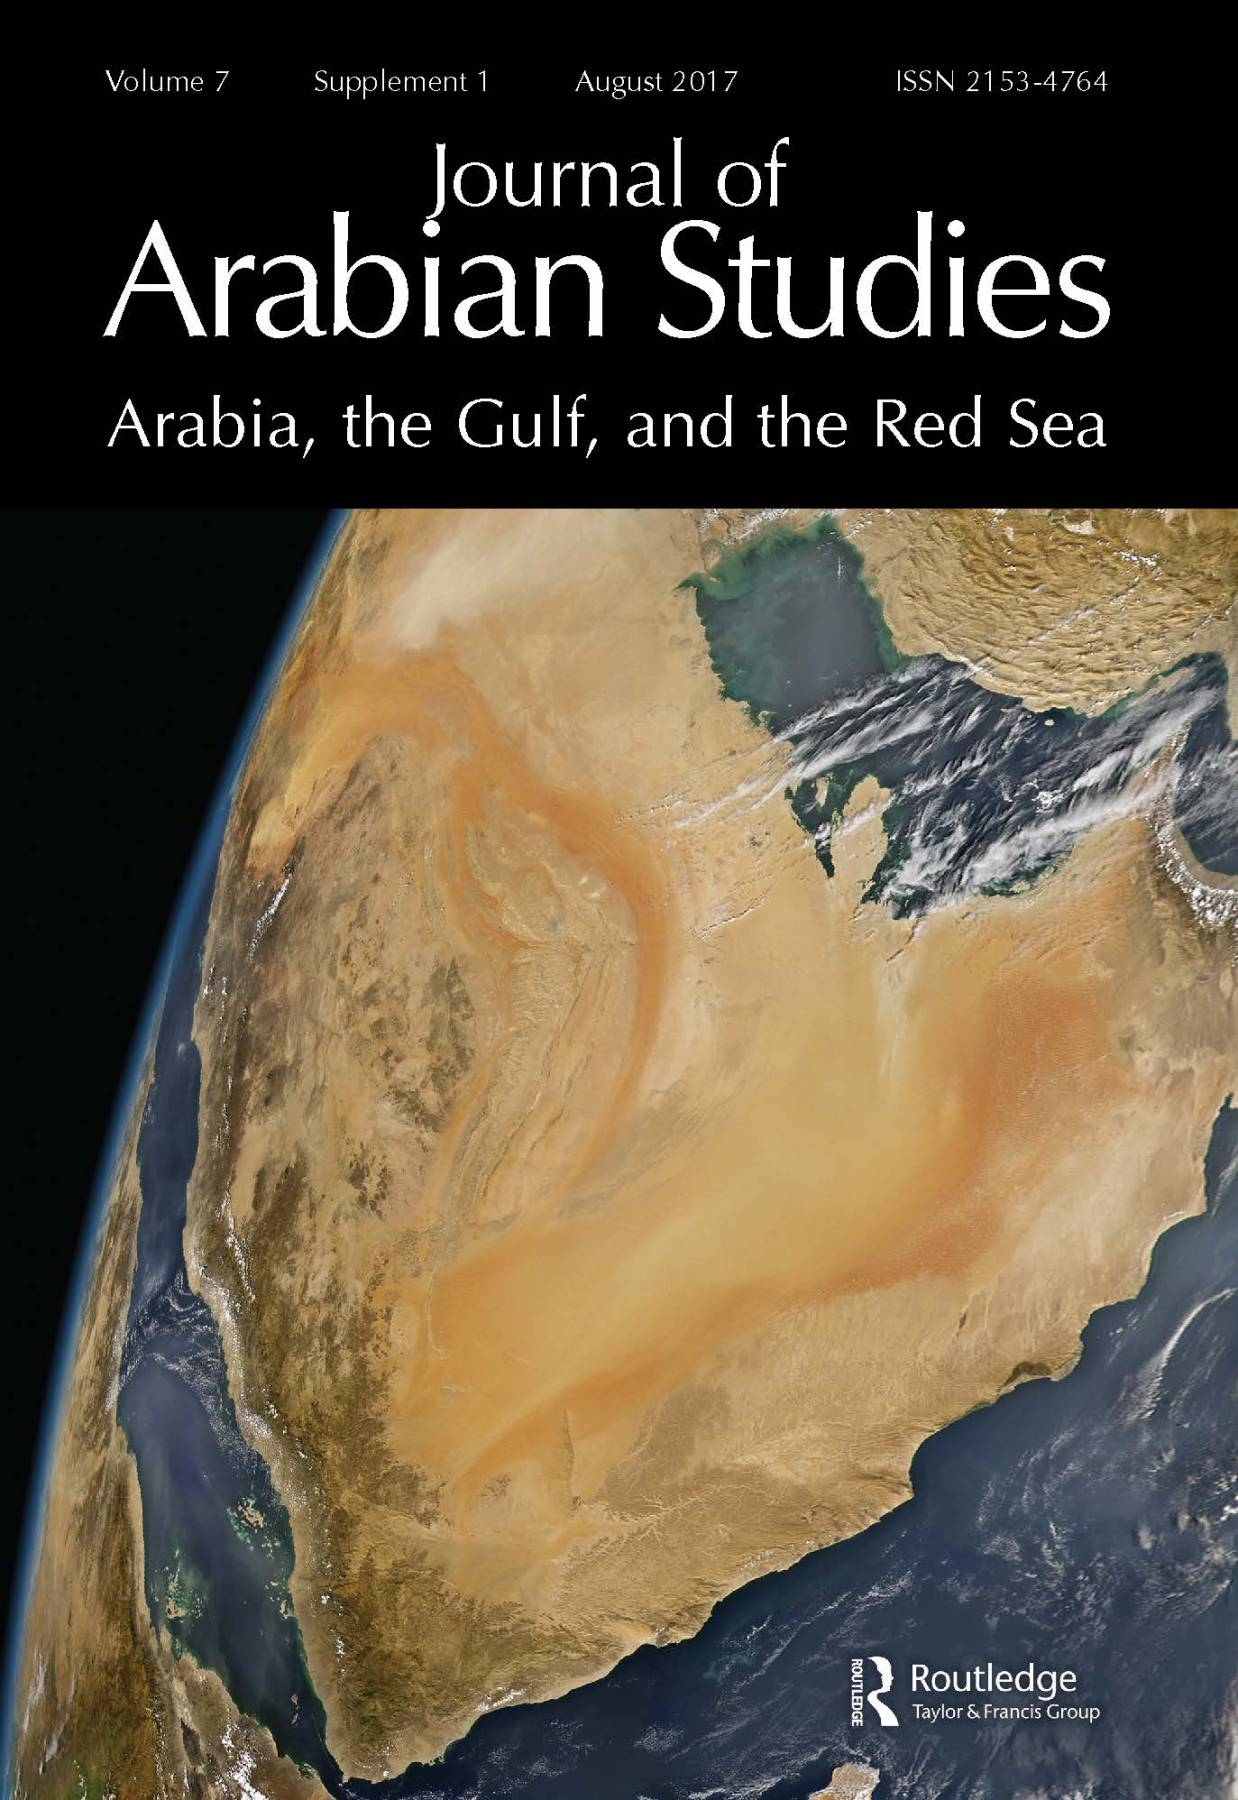 Journal of Arabian Studies: Art and Cultural Production in the GCC